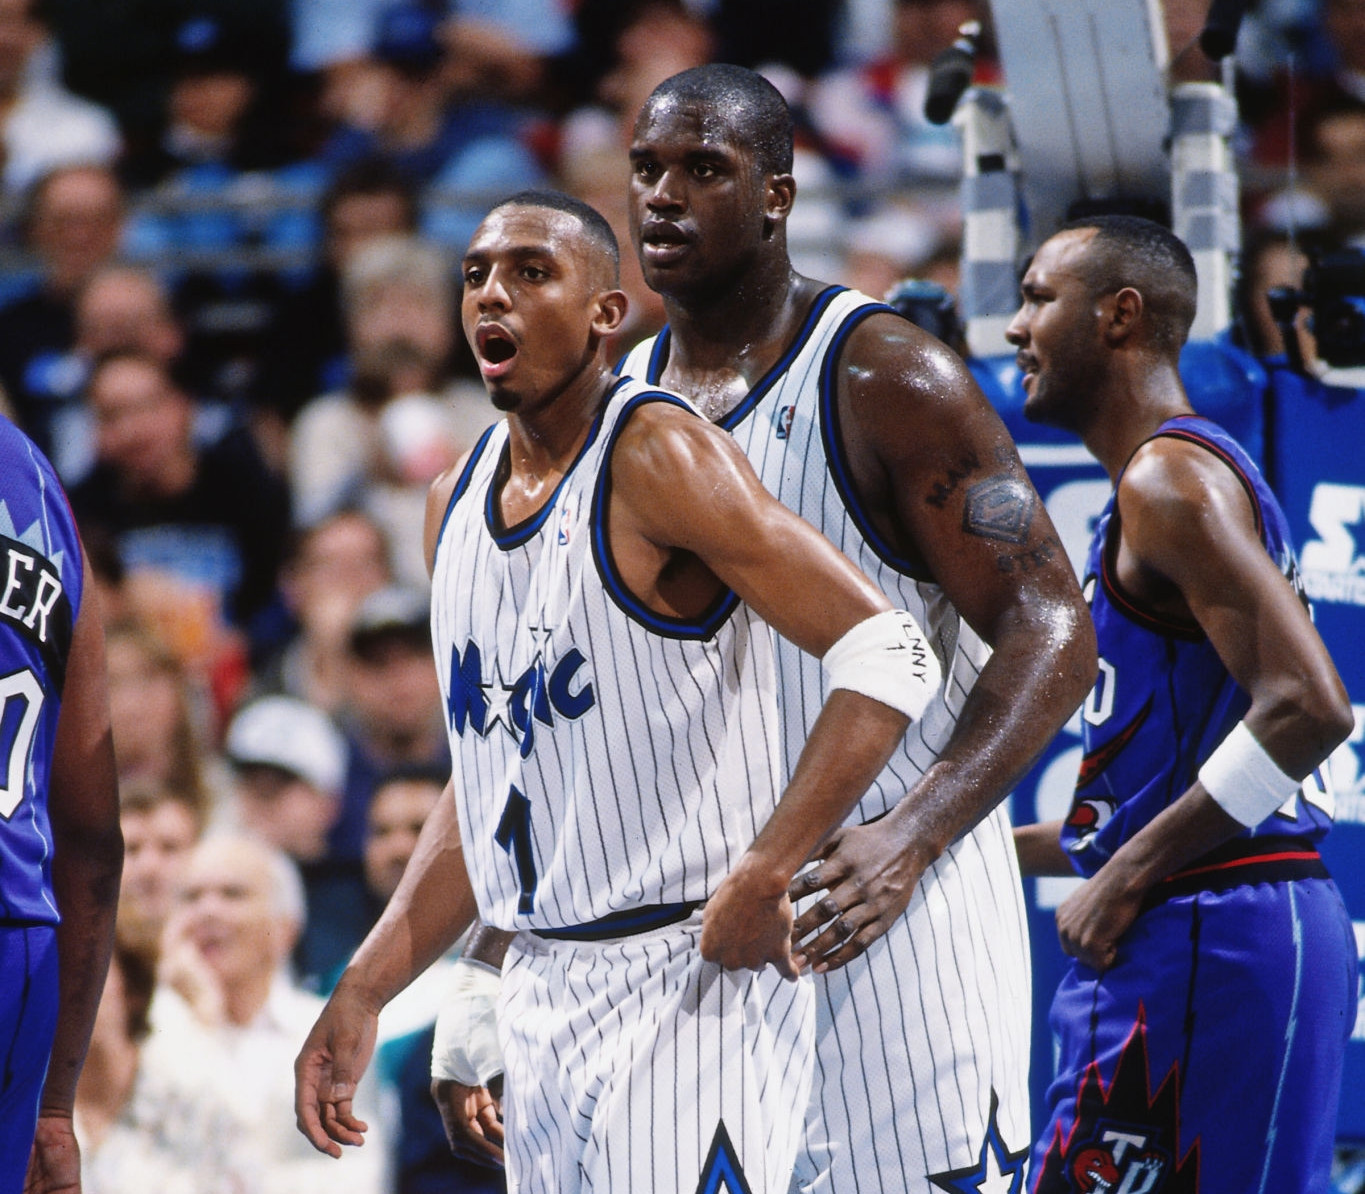 Penny Hardaway and Shaquille ONeal